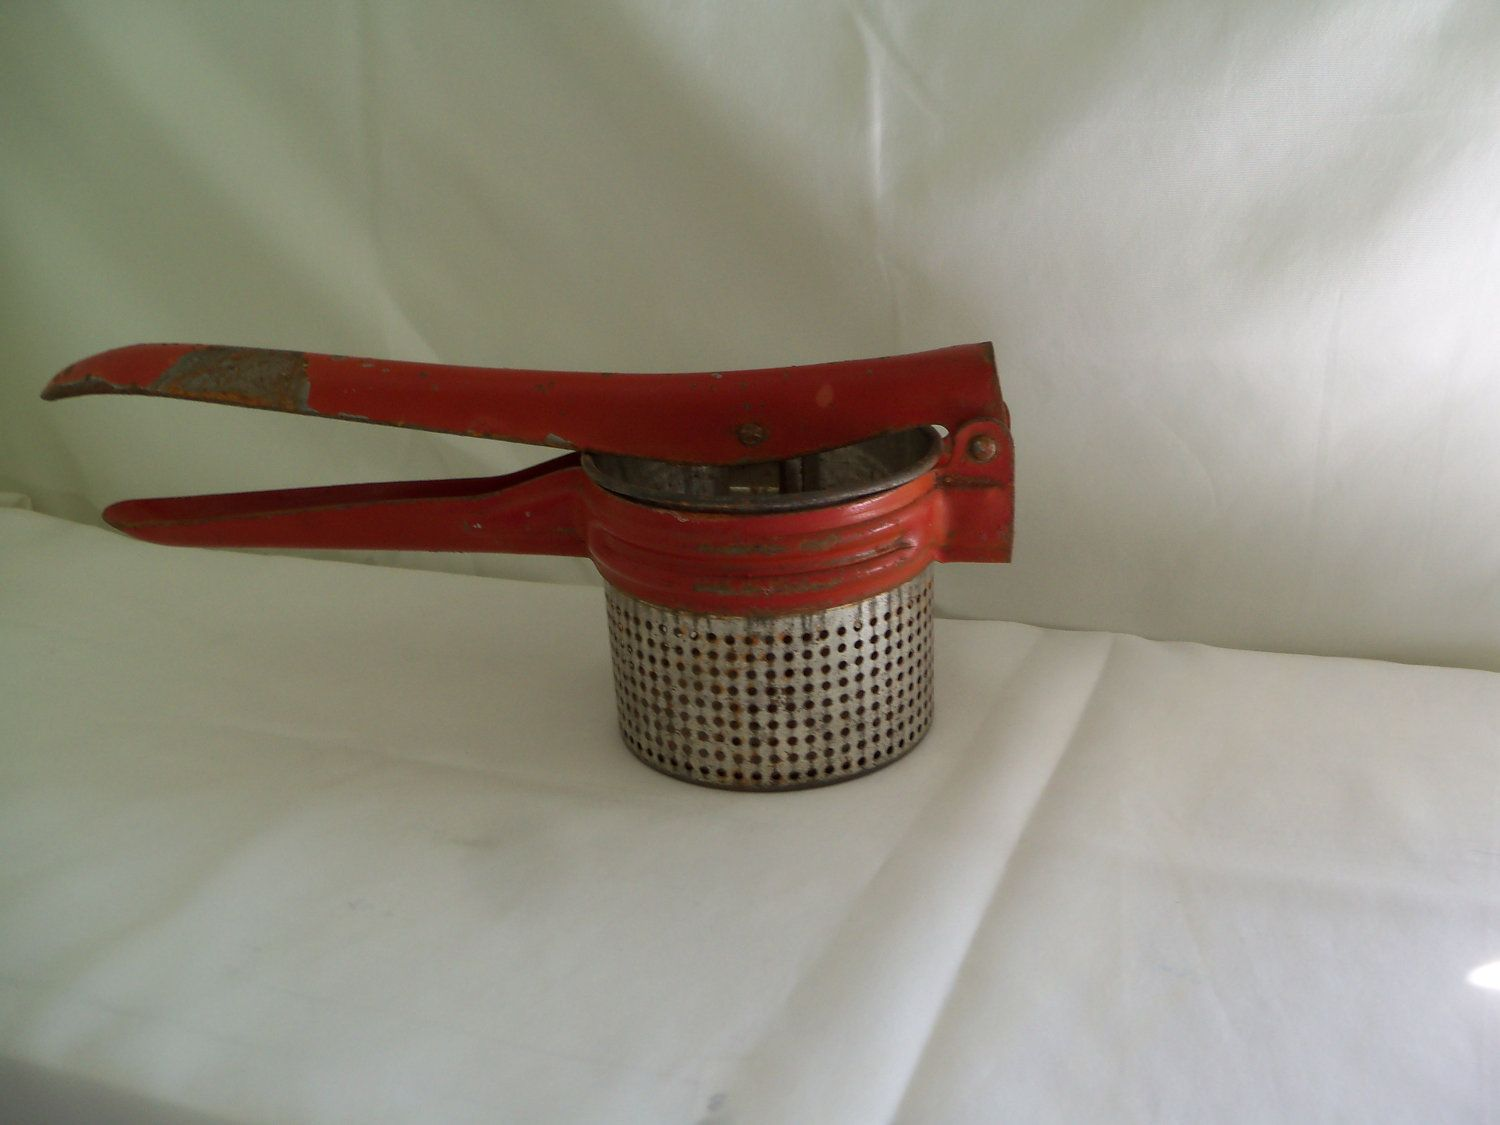 Vintage Burnt Orange Red Potato Ricer Smasher Masher Kitchen Decor Farmhouse Cooking Baking Tool. $16.00, via Etsy.